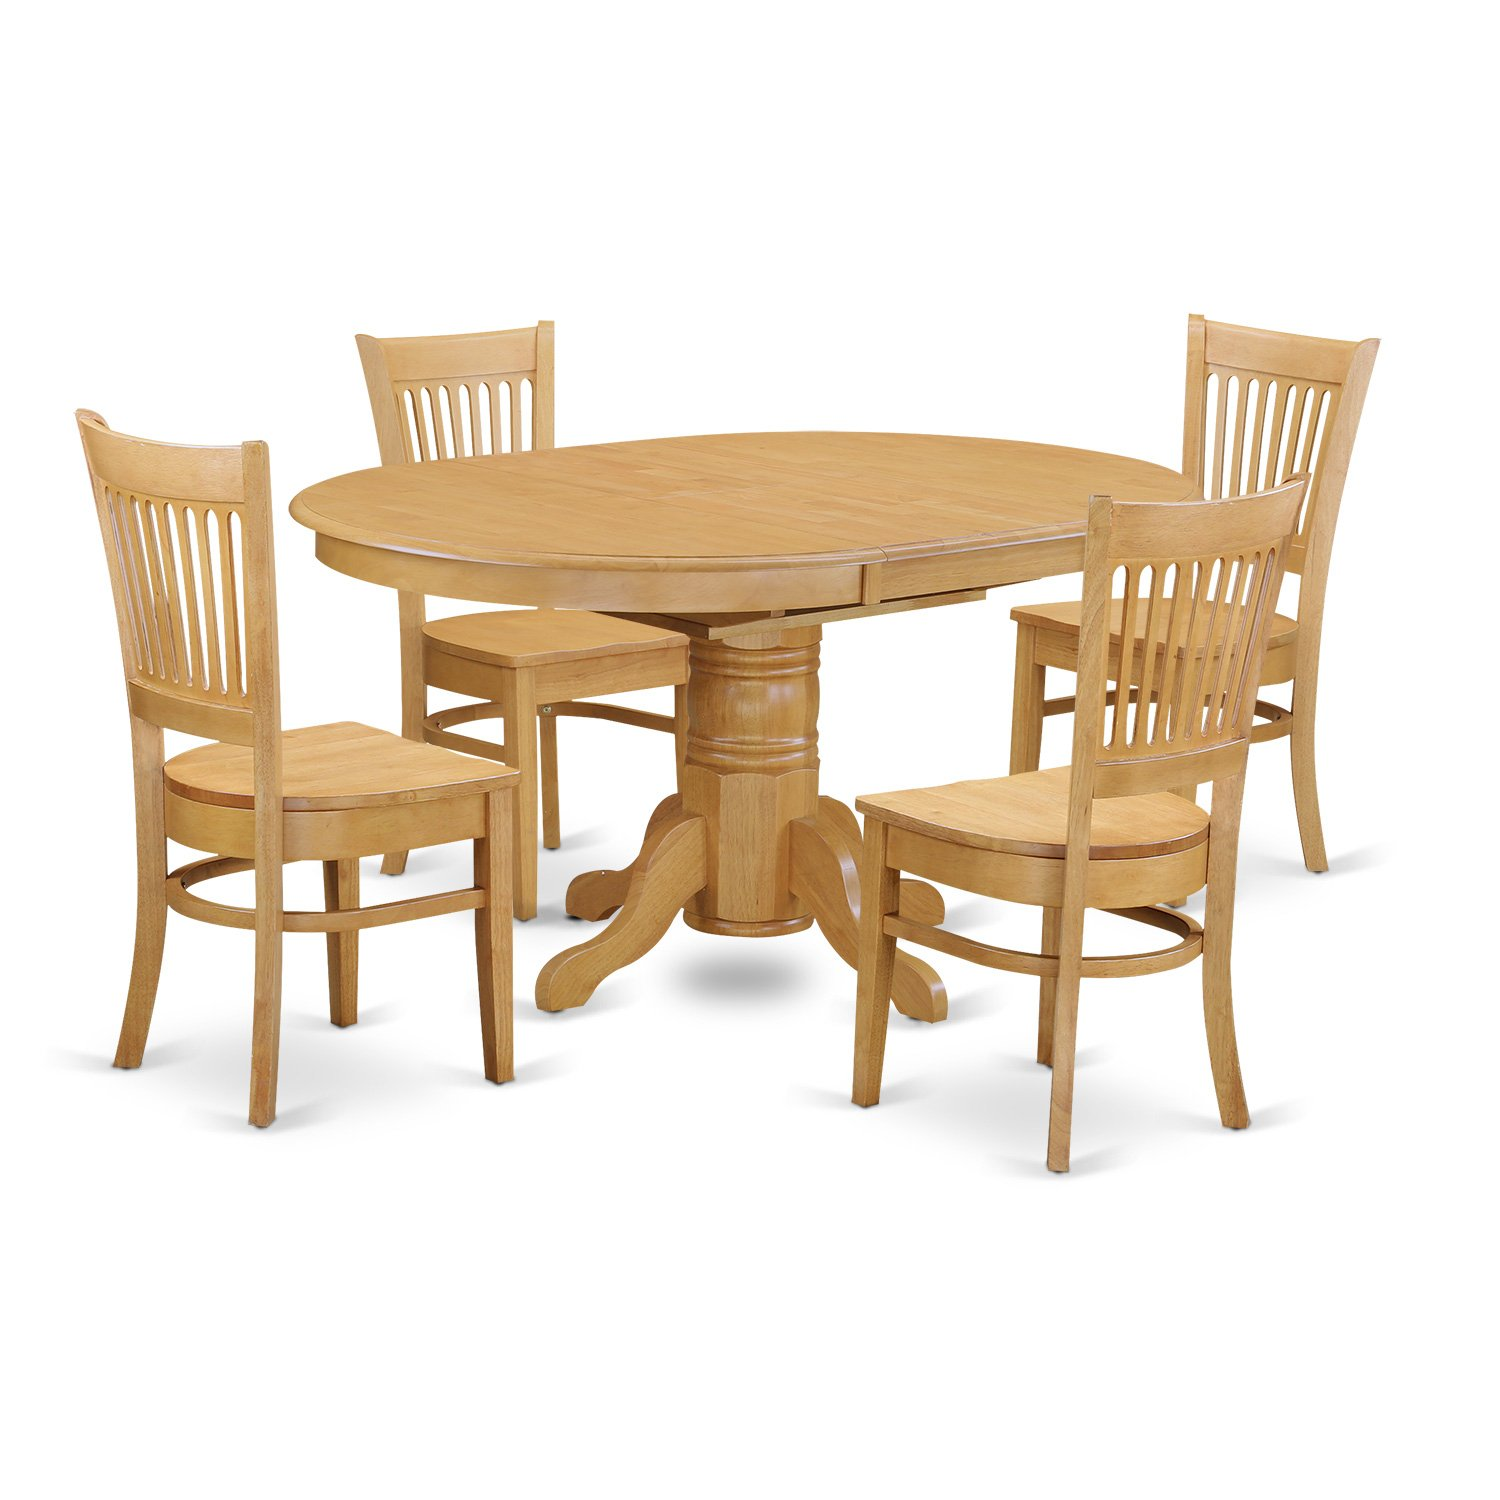 Oval Kitchen Table And Chairs: 5-PC Dinette Kitchen Dining Set, Oval Table With 4 Wood